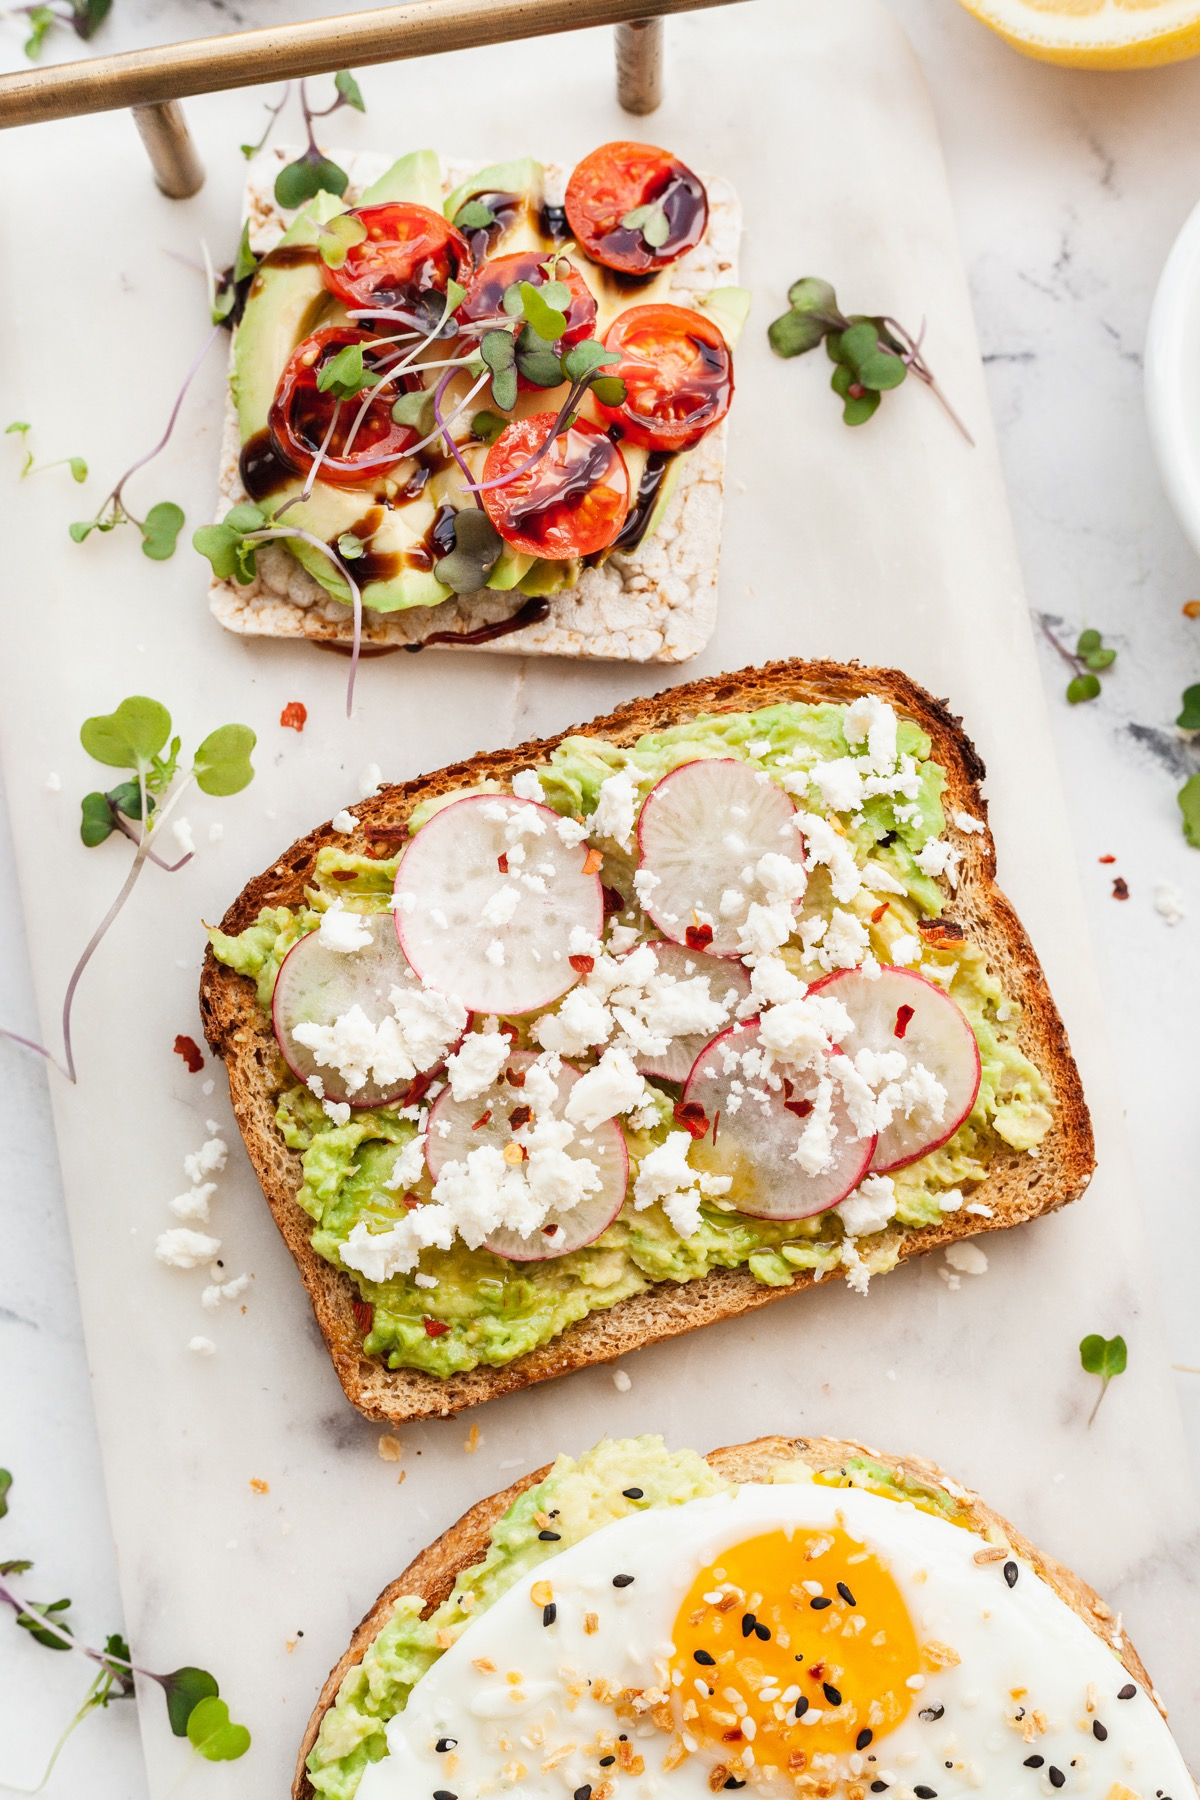 several slices of avocado toast with different toppings including sliced radishes, feta, and tomatoes